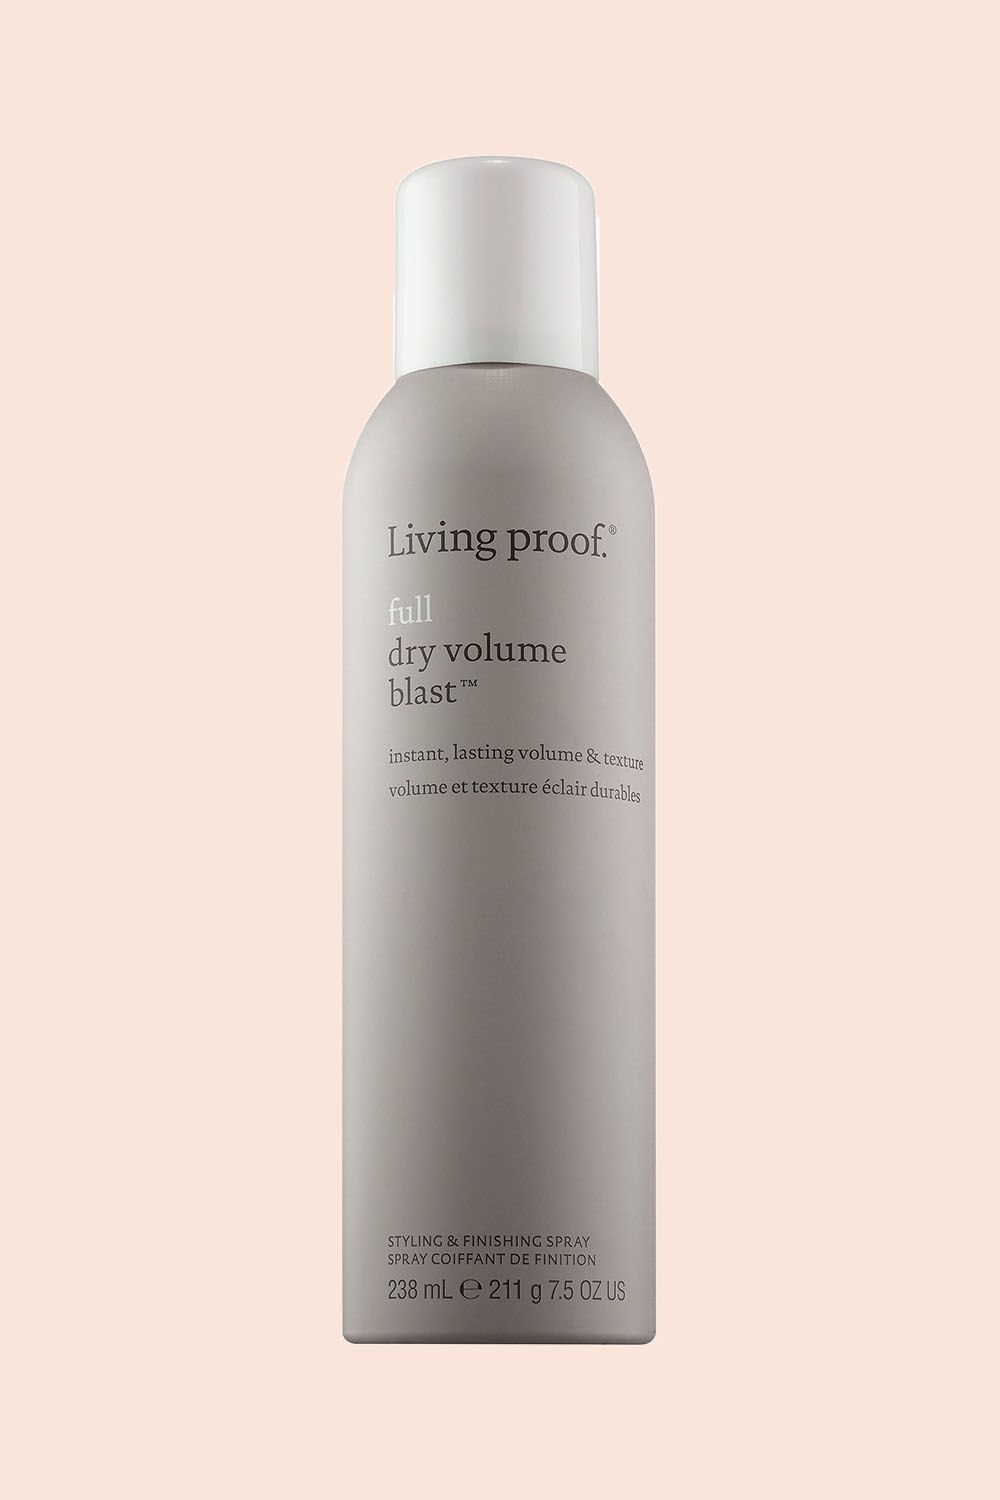 "<p>Dry shampoo is a texturizer just as much as it's a waterless cleanser. To amp up pin-straight strands, look to a volumizing formula that won't weight hair down. This spray from Living Proof has special molecules that are lighter and bigger than industry standard ingredients for that extra zhoosh.</p><p>Living Proof Full Dry Volume Blast, $29; <a href=""http://bit.ly/2kLSj2l"" target=""_blank"" data-tracking-id=""recirc-text-link"">ulta.com</a>.</p>"